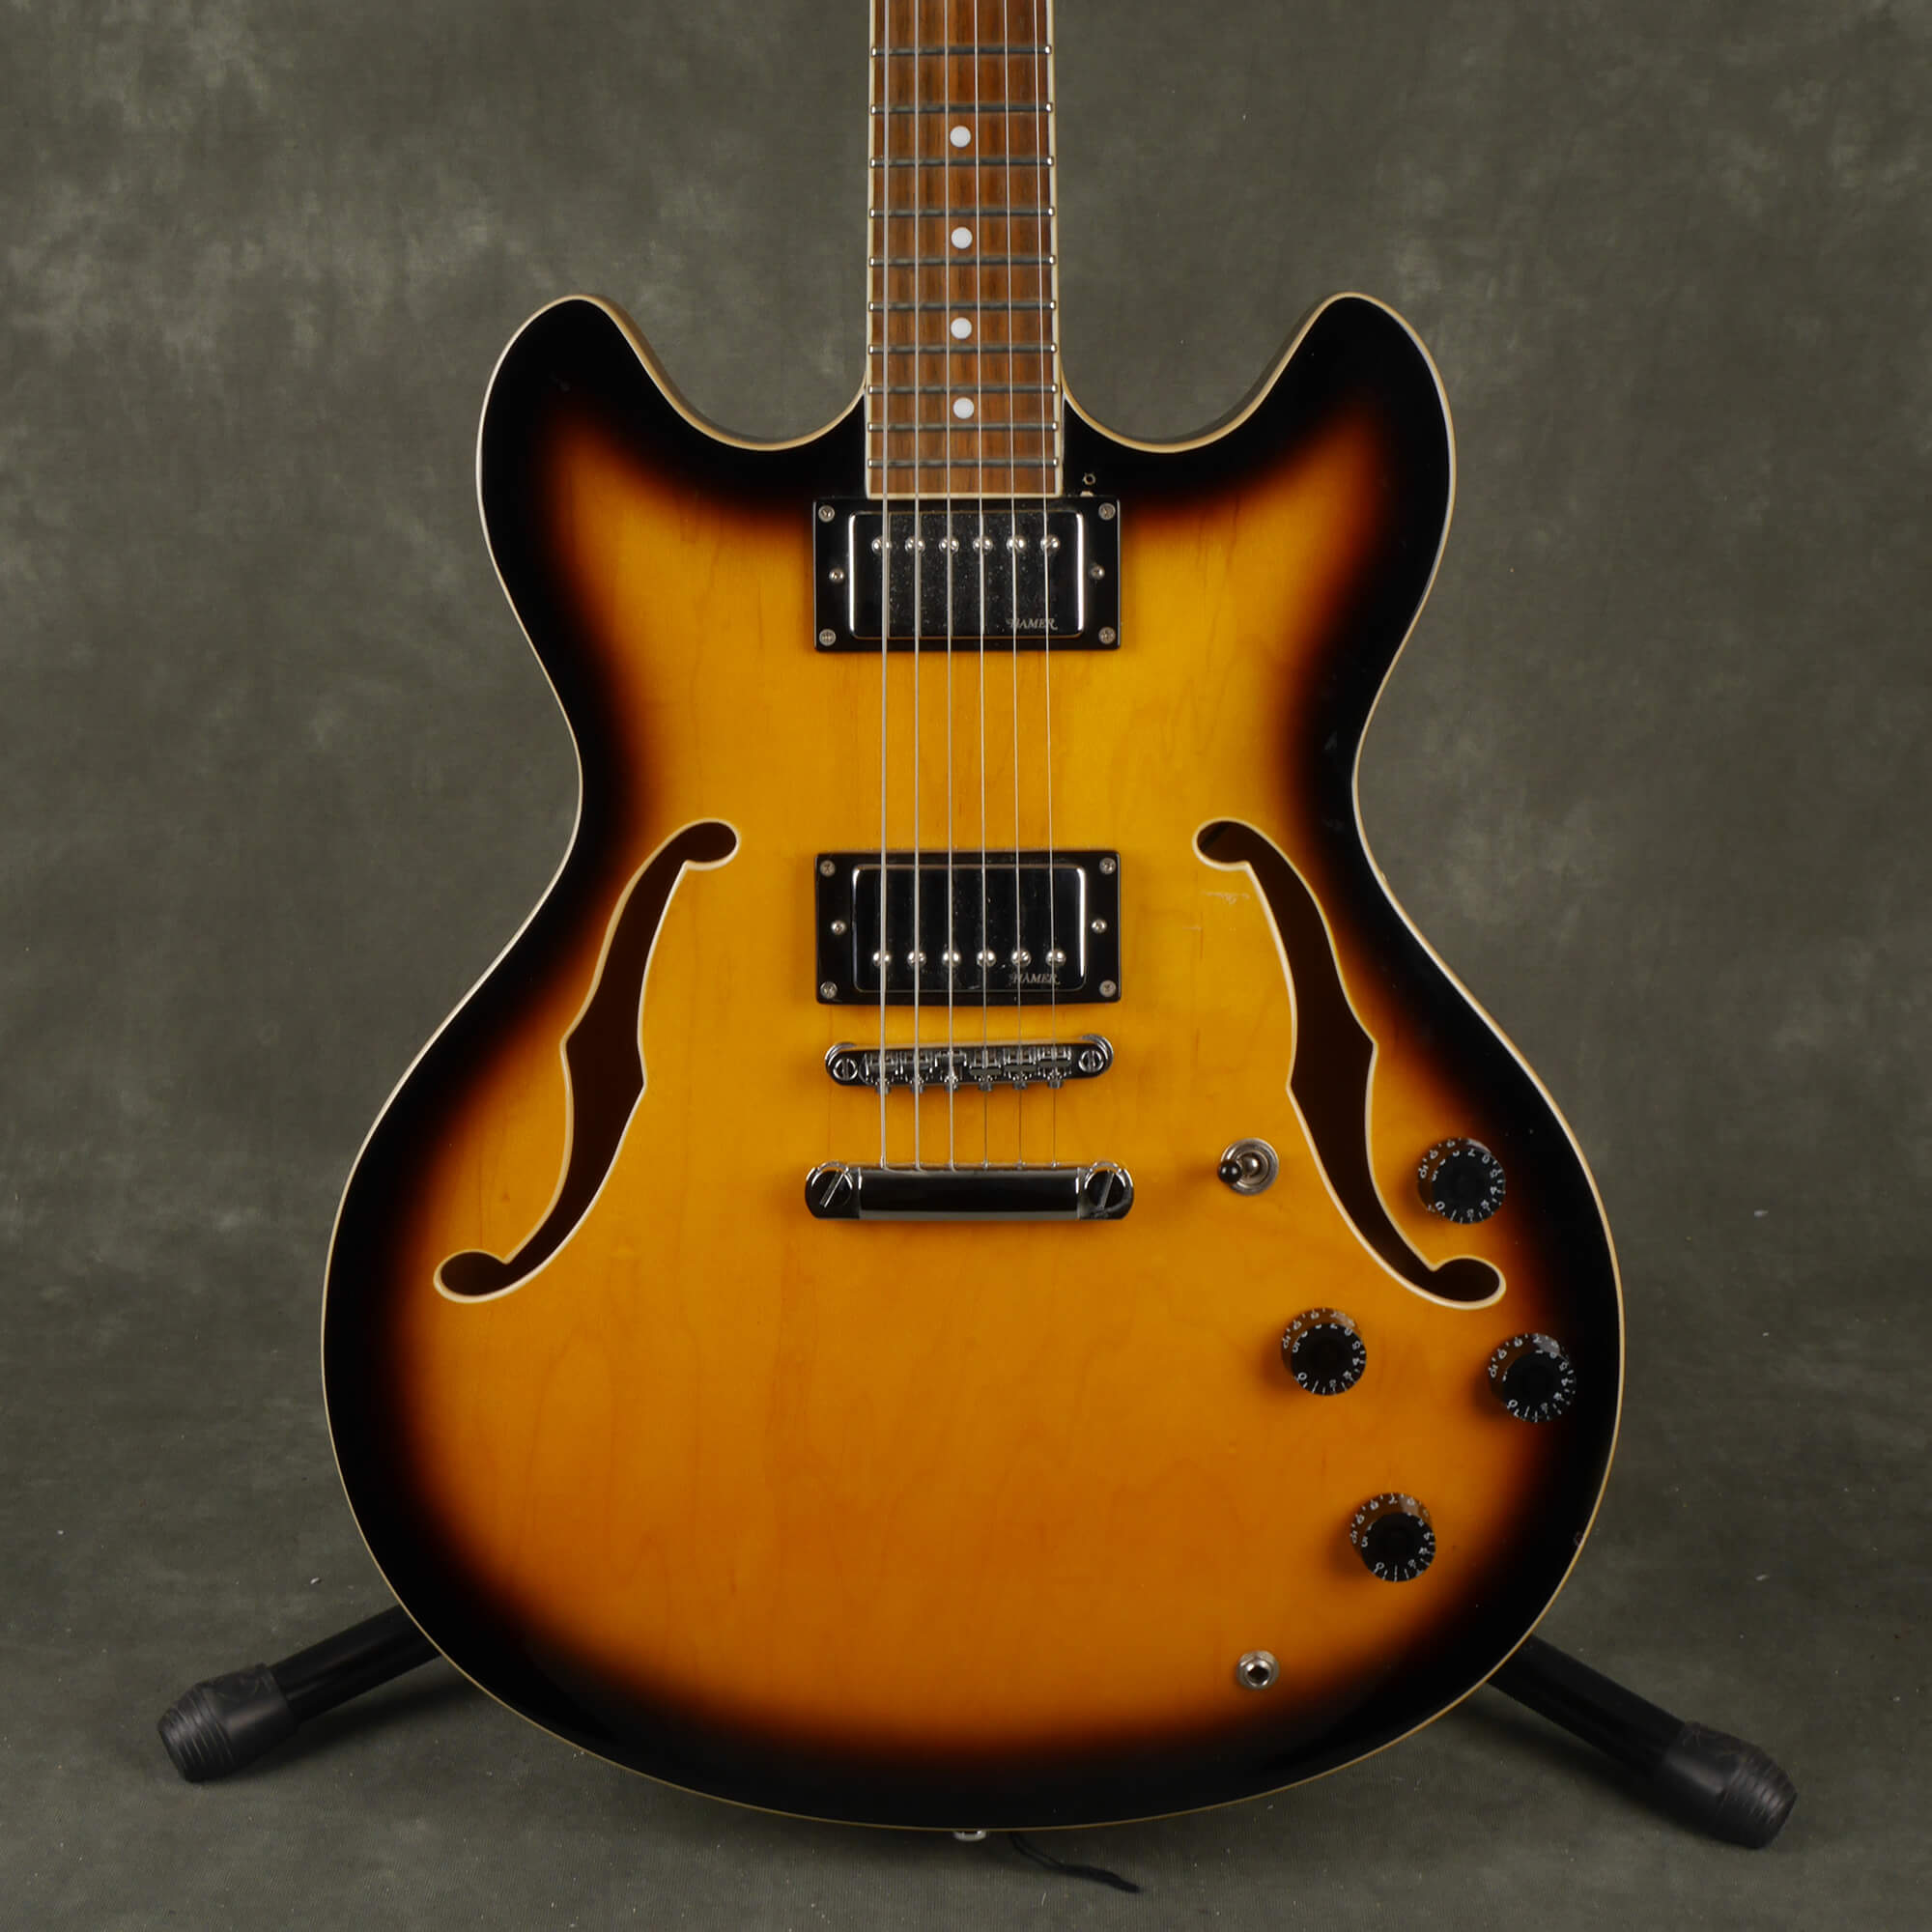 Hamer XT Series Echotone Semi Hollow Guitar - Sunburst - 2nd Hand